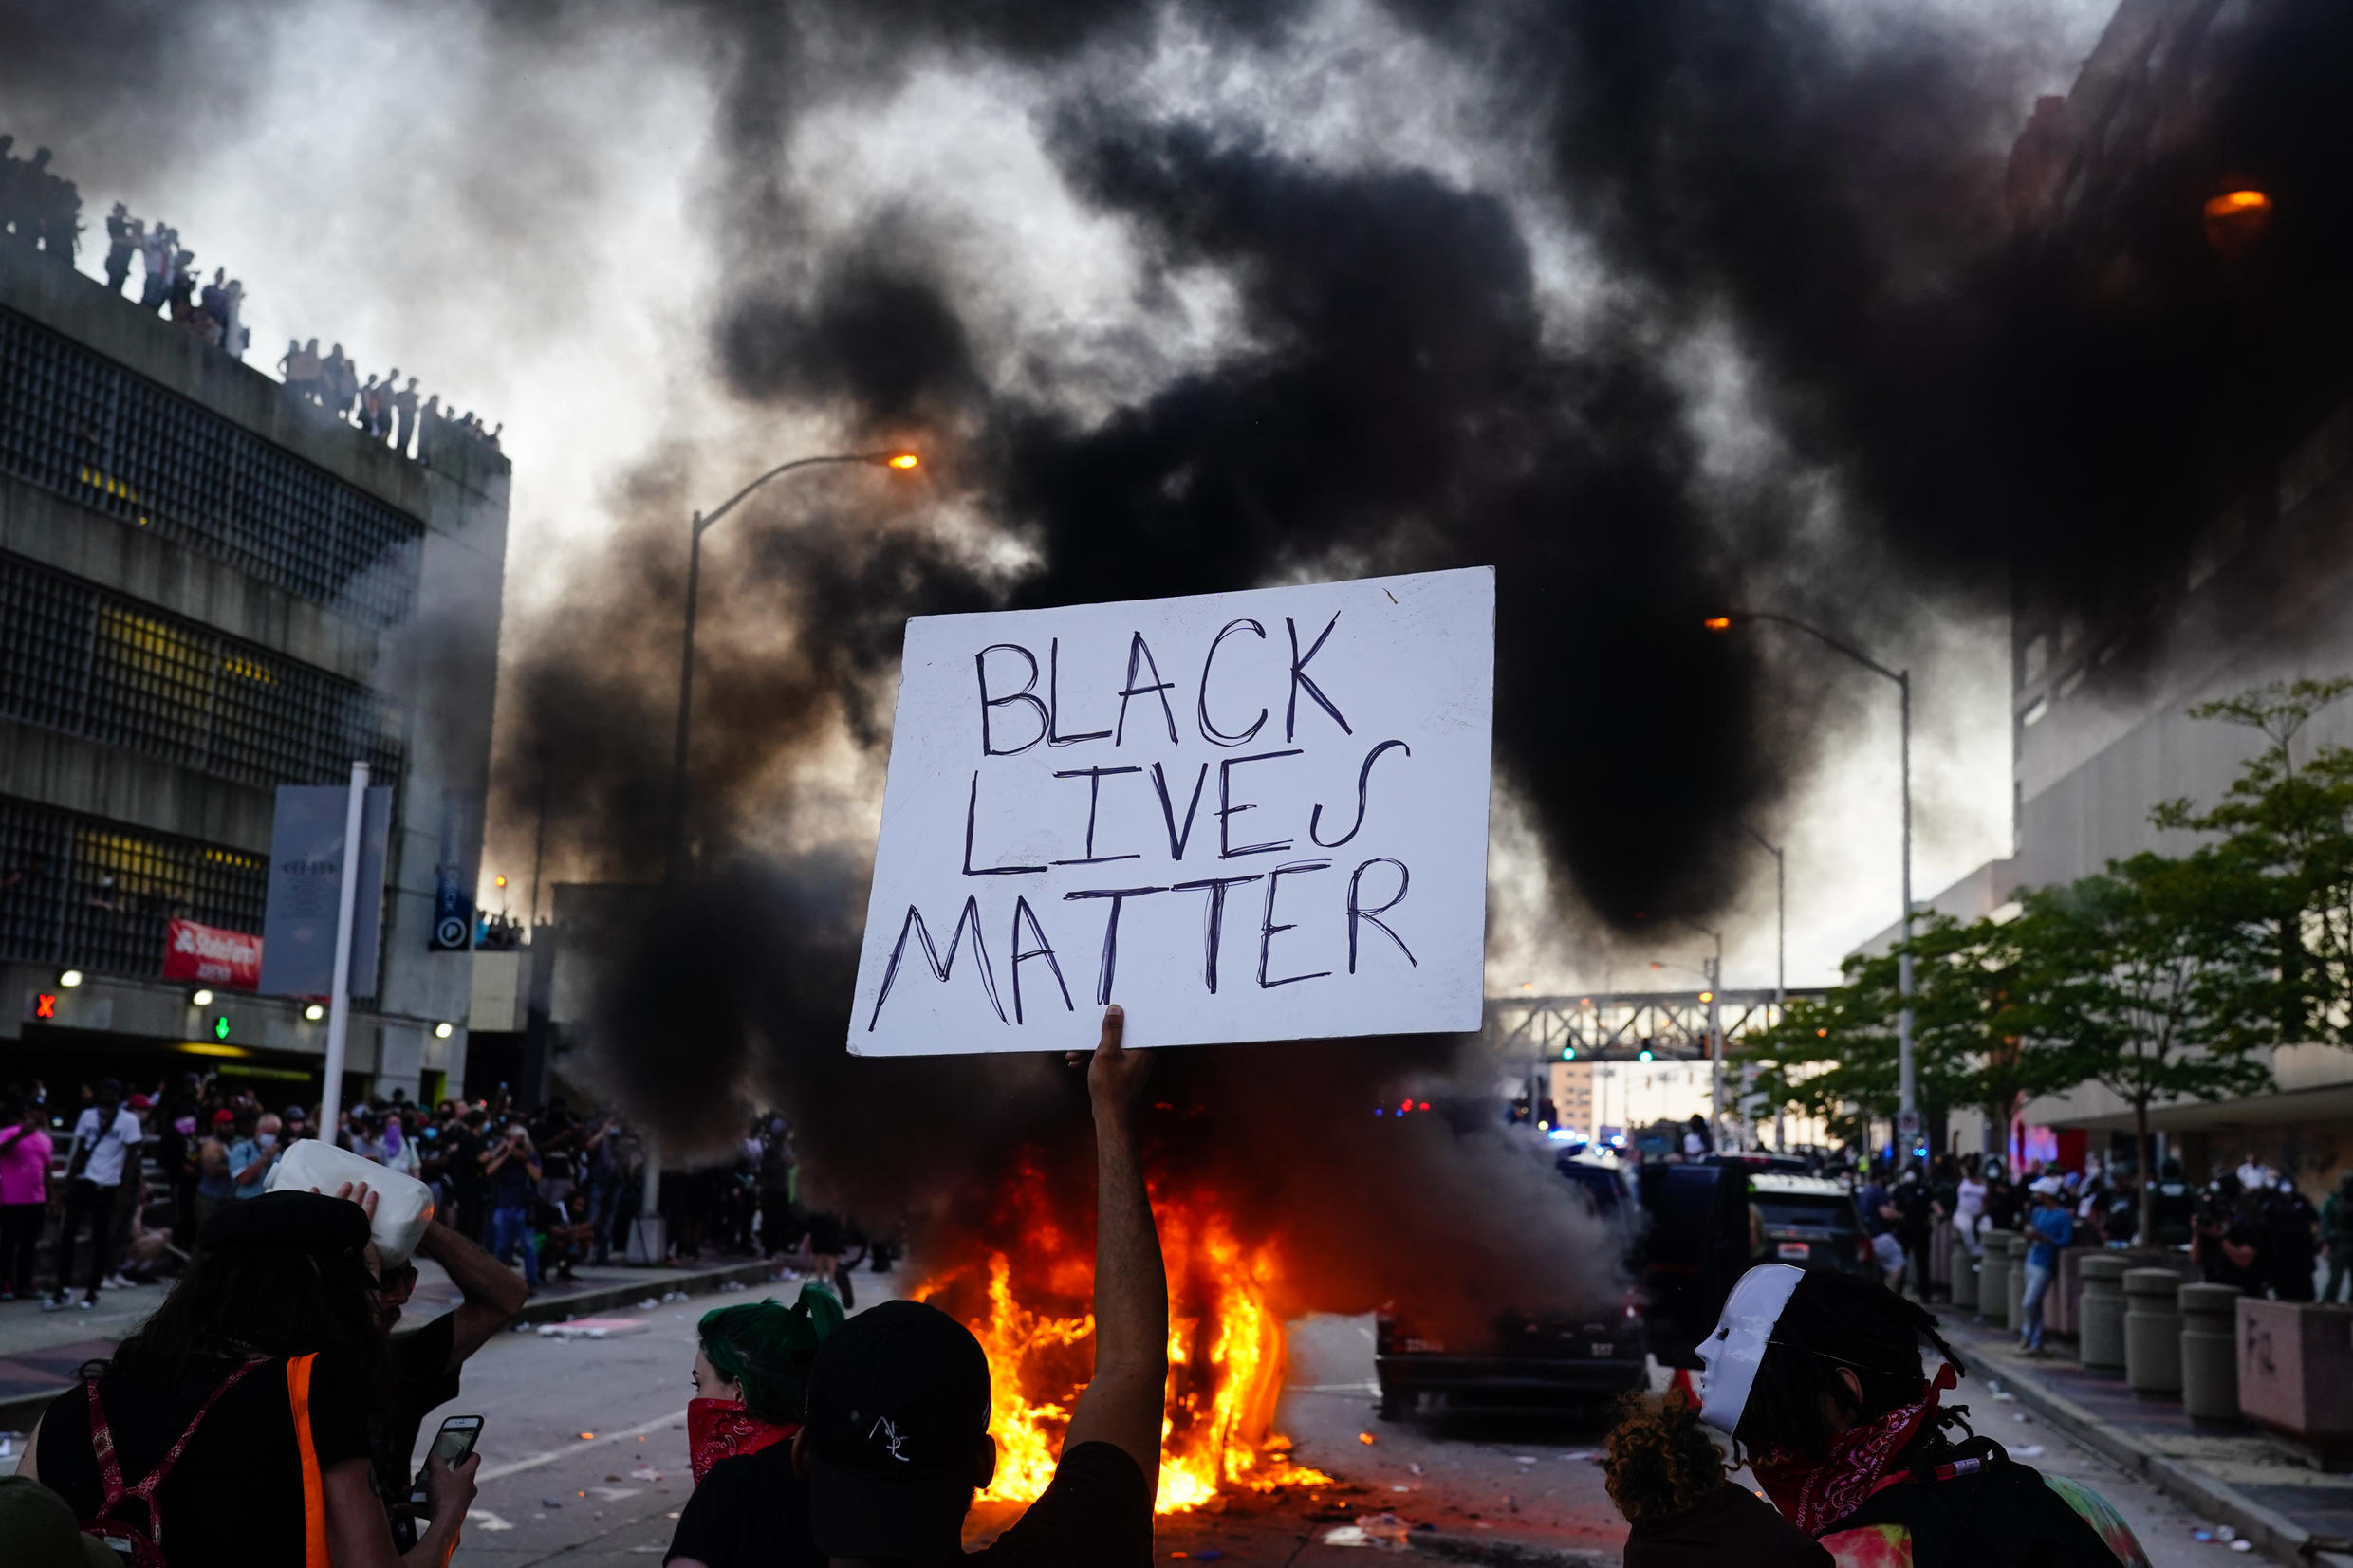 A man holds a Black Lives Matter sign as a police car burns during a protest on May 29, 2020 in Atlanta, Georgia.